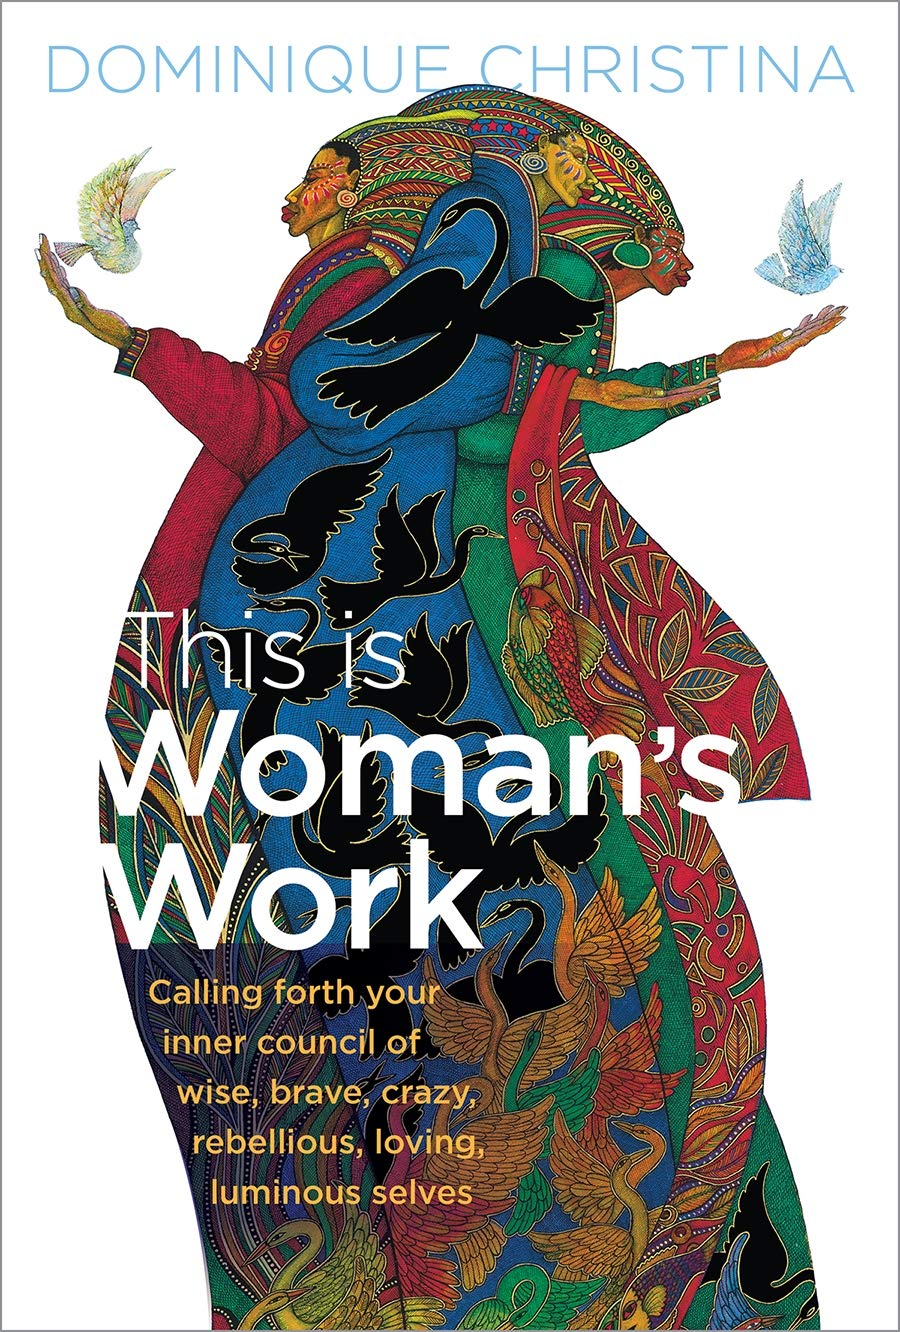 A Womans Work XIII